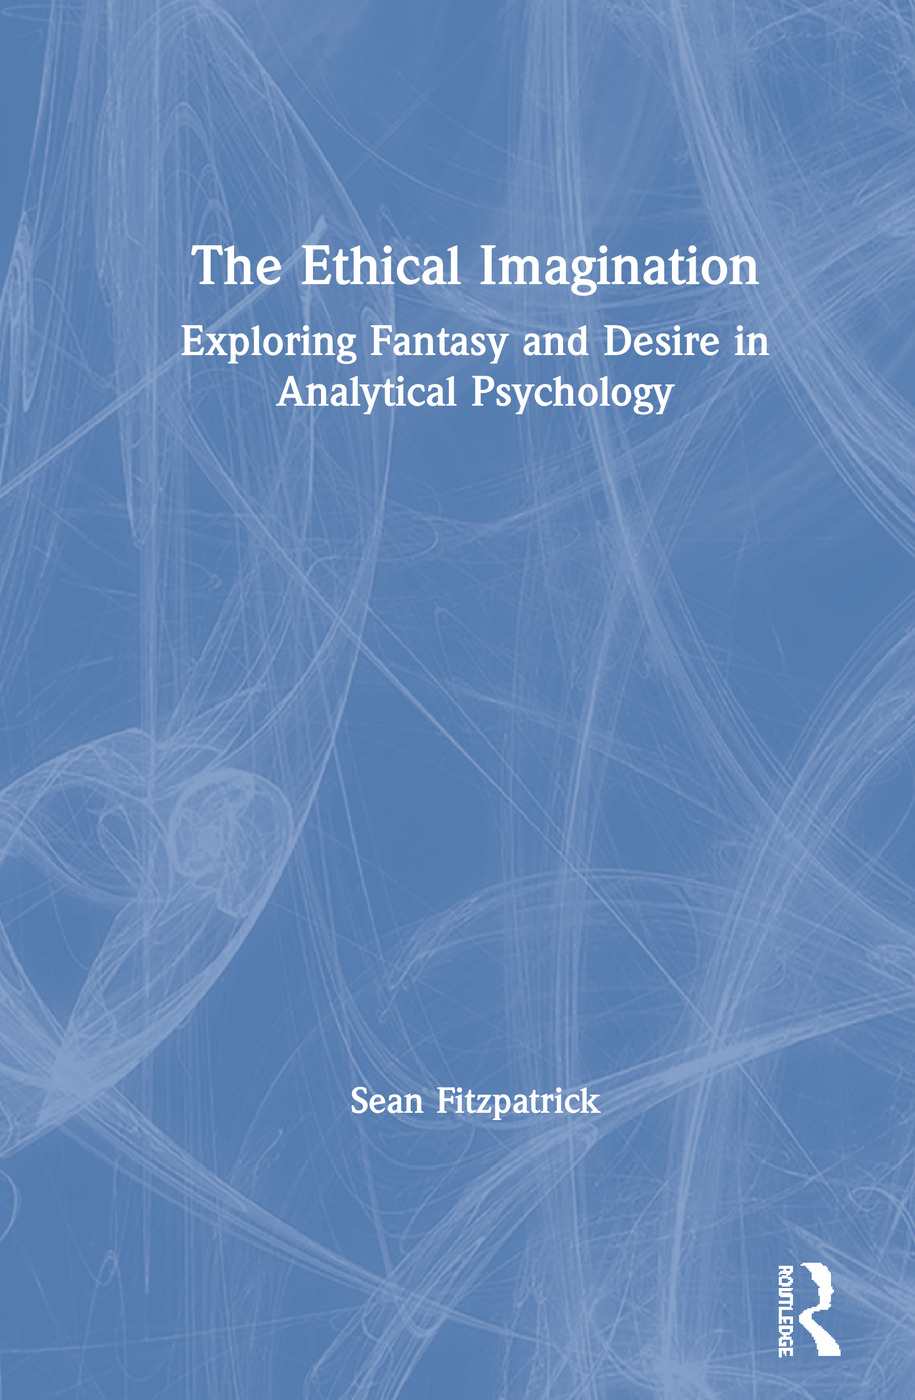 The Ethical Imagination: Exploring Fantasy and Desire in Analytical Psychology book cover